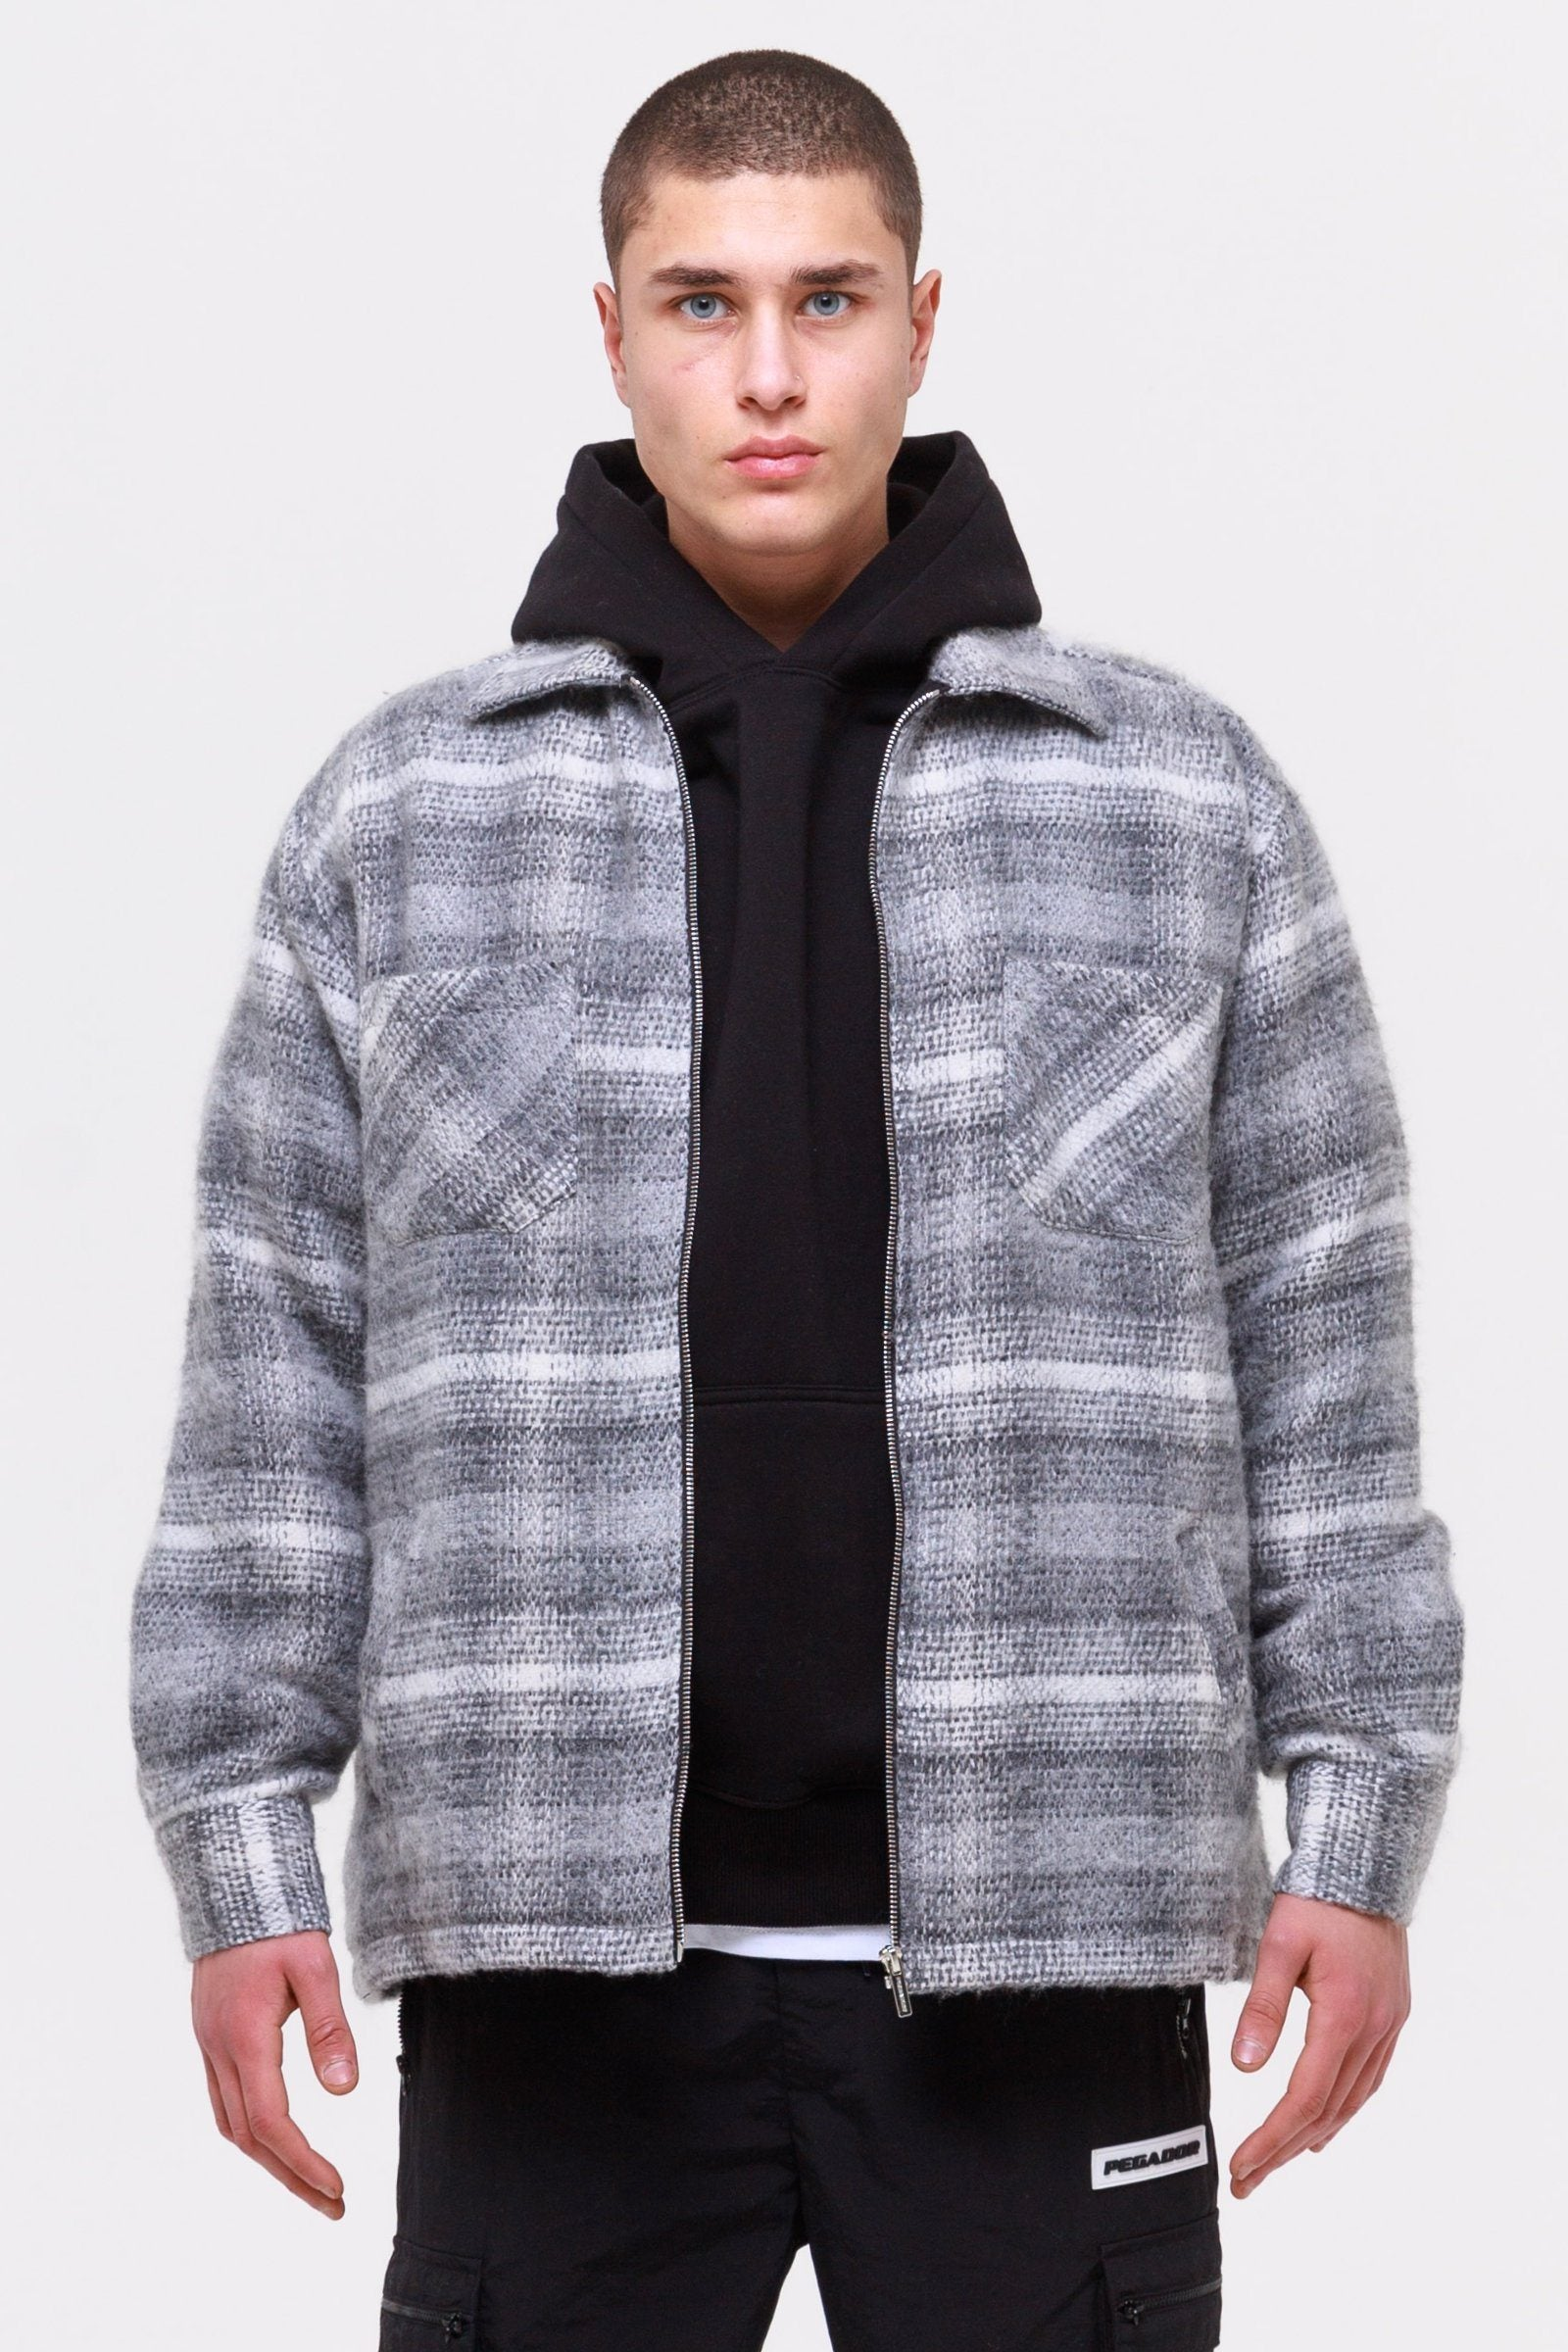 Vogar Hairy Flannel Jacket Dust Grey JACKET Wild Society